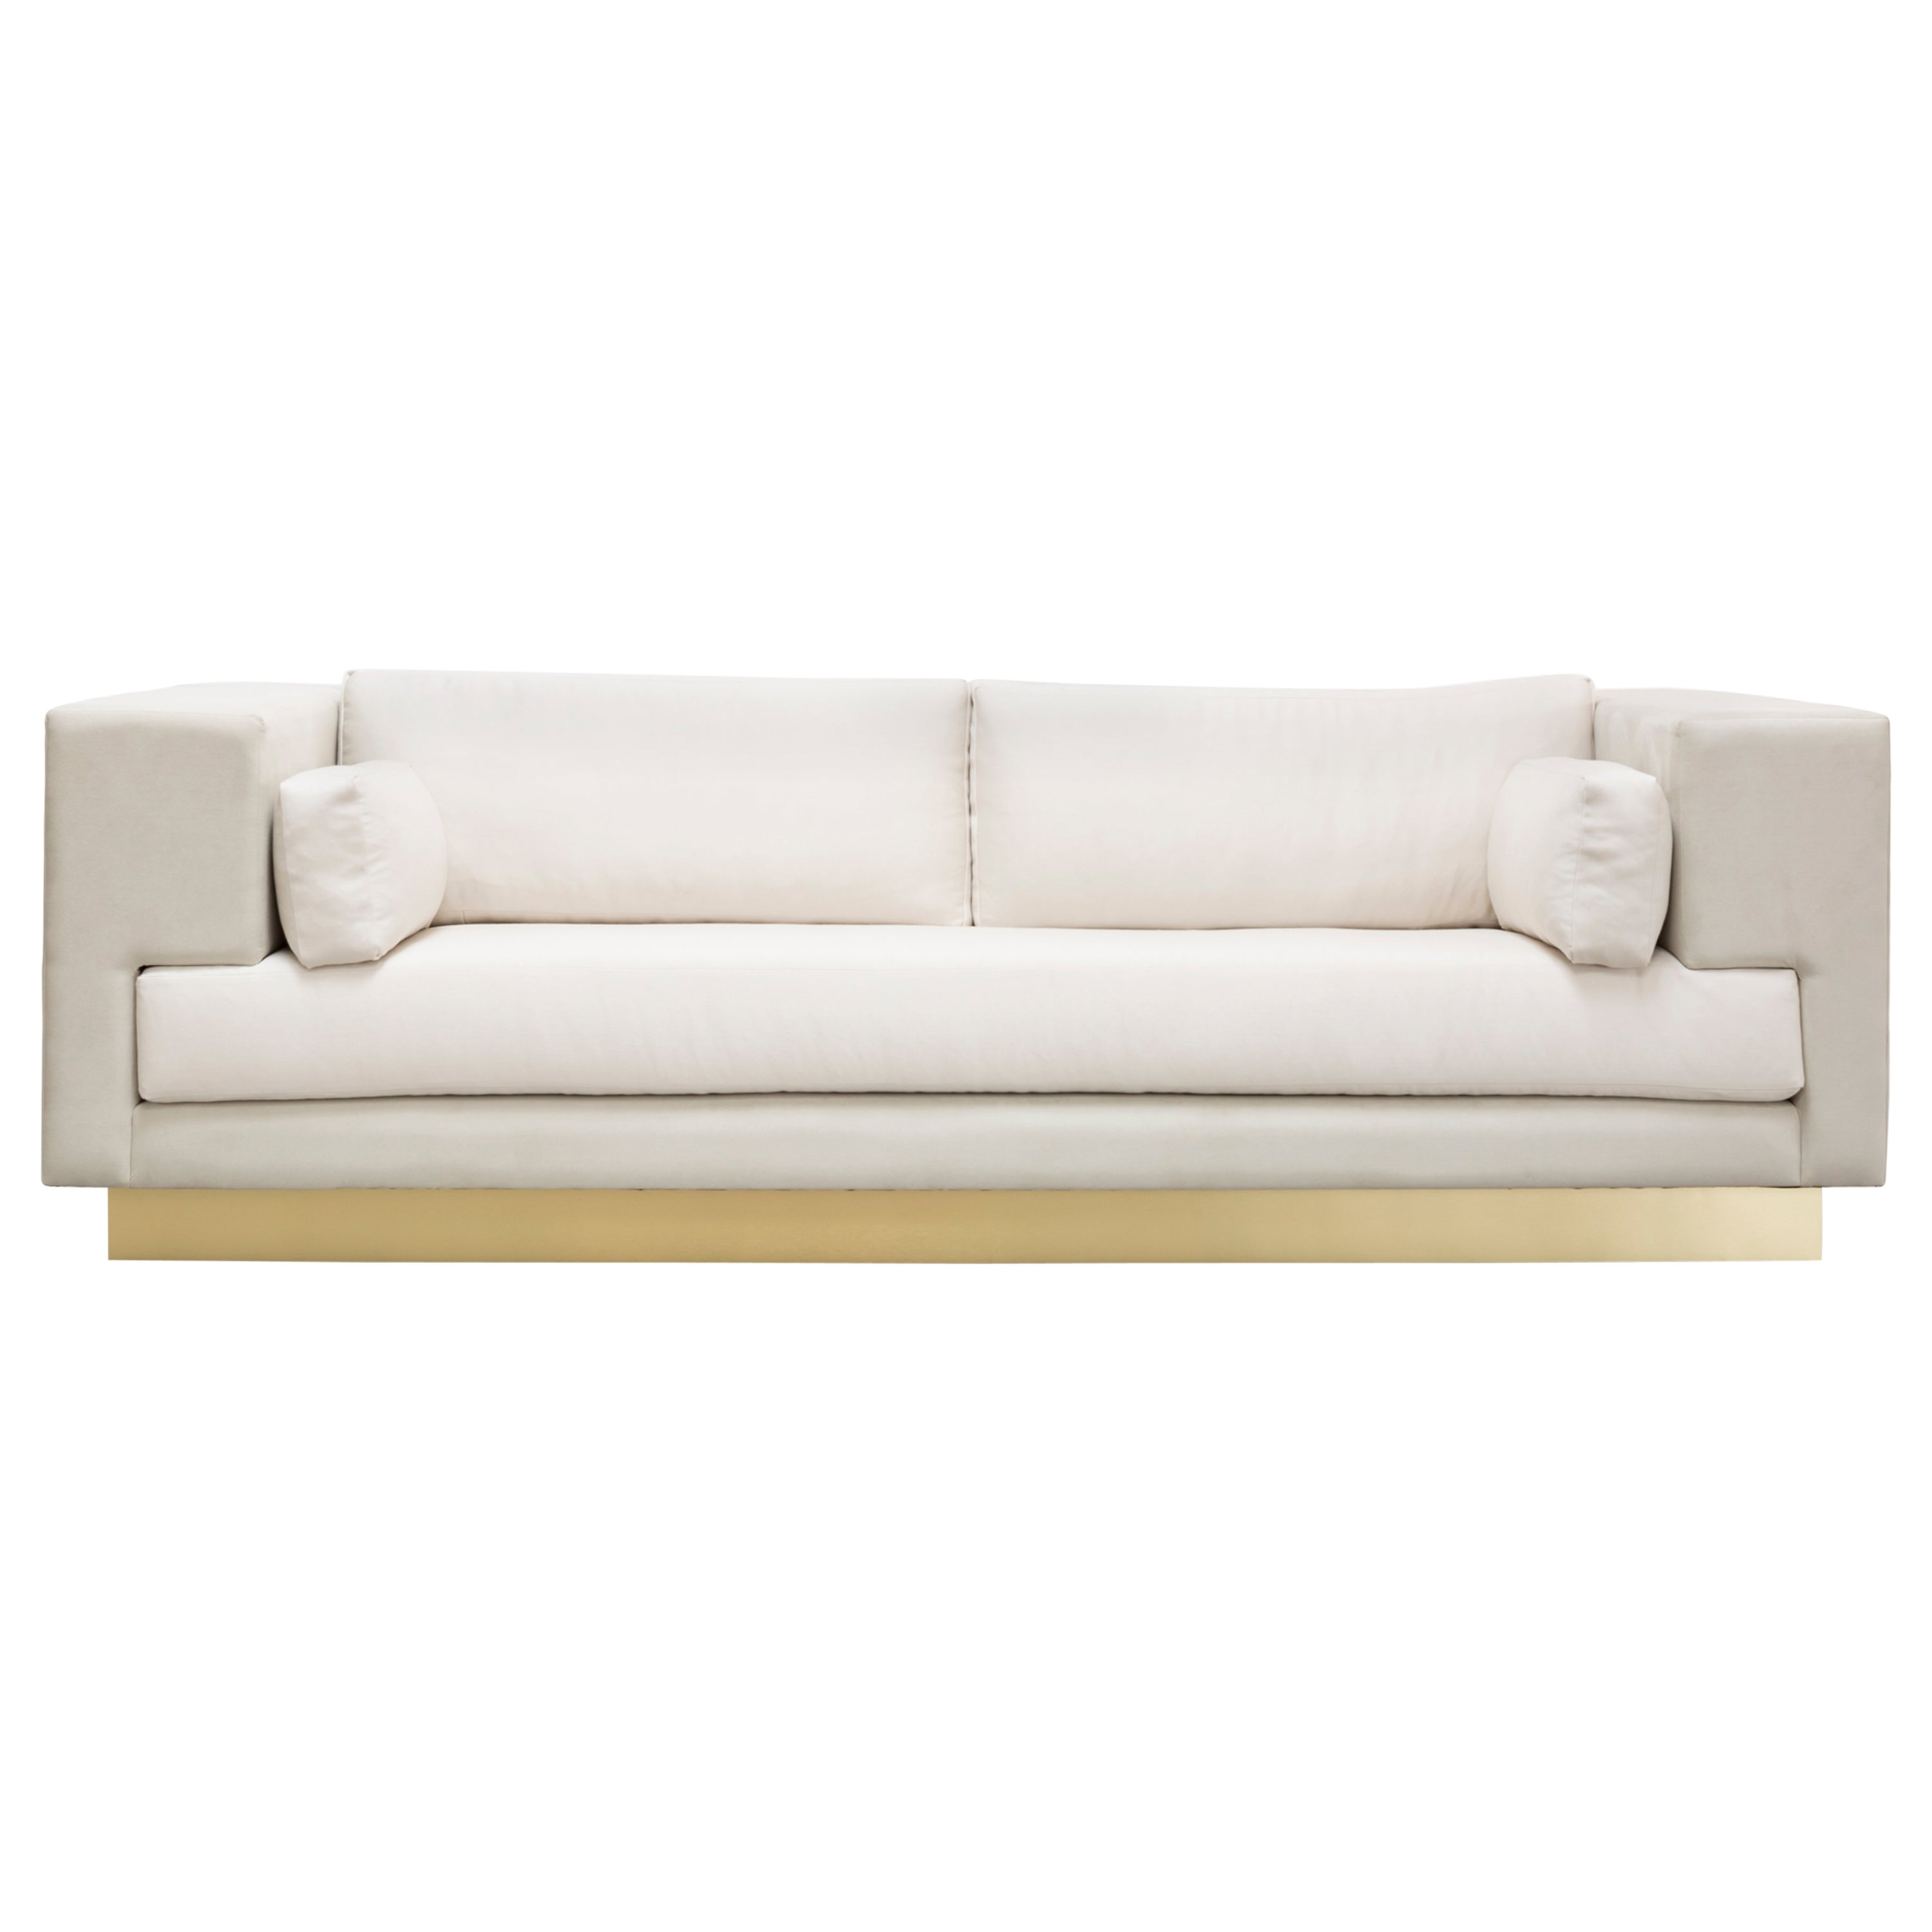 LACROIX SOFA - Modern Ultra Suede Sofa with Metal Base